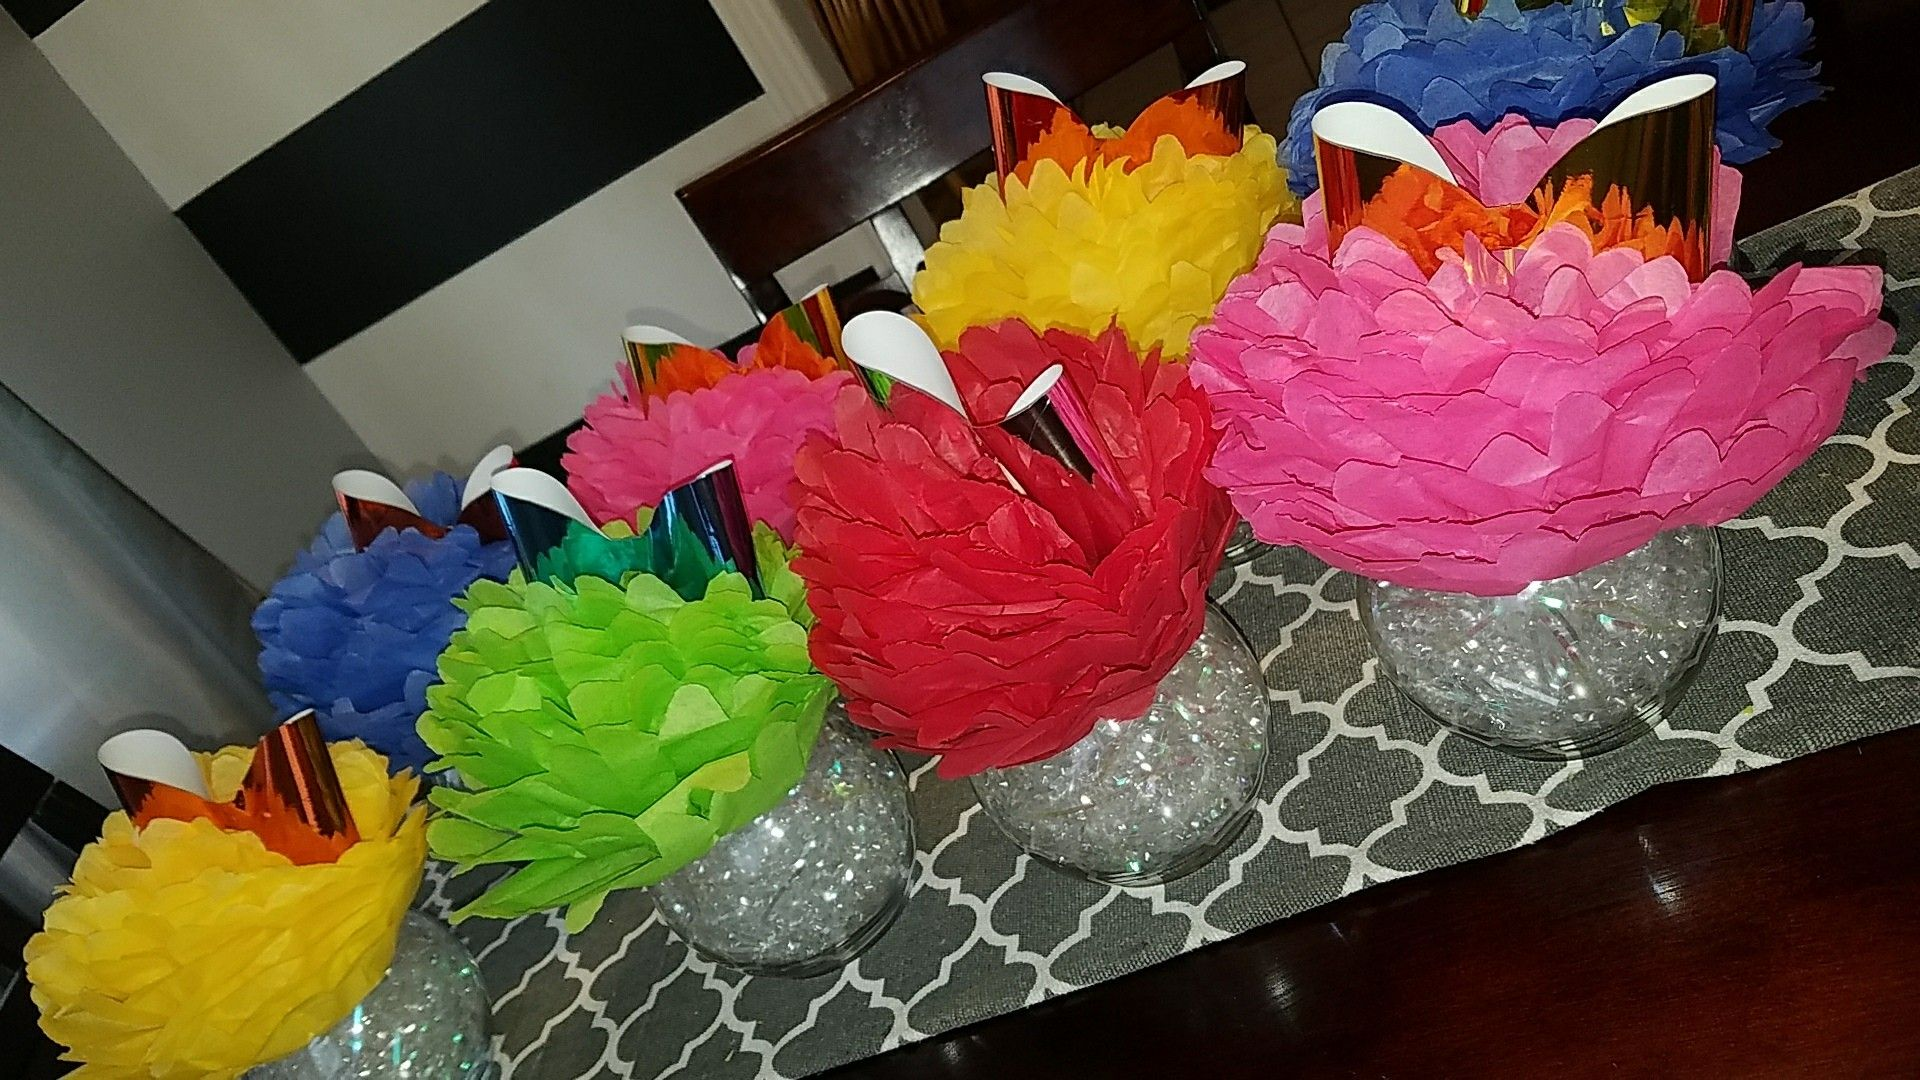 Jojo Siwa Centerpieces Everything Was Bough At The Dollar Tree